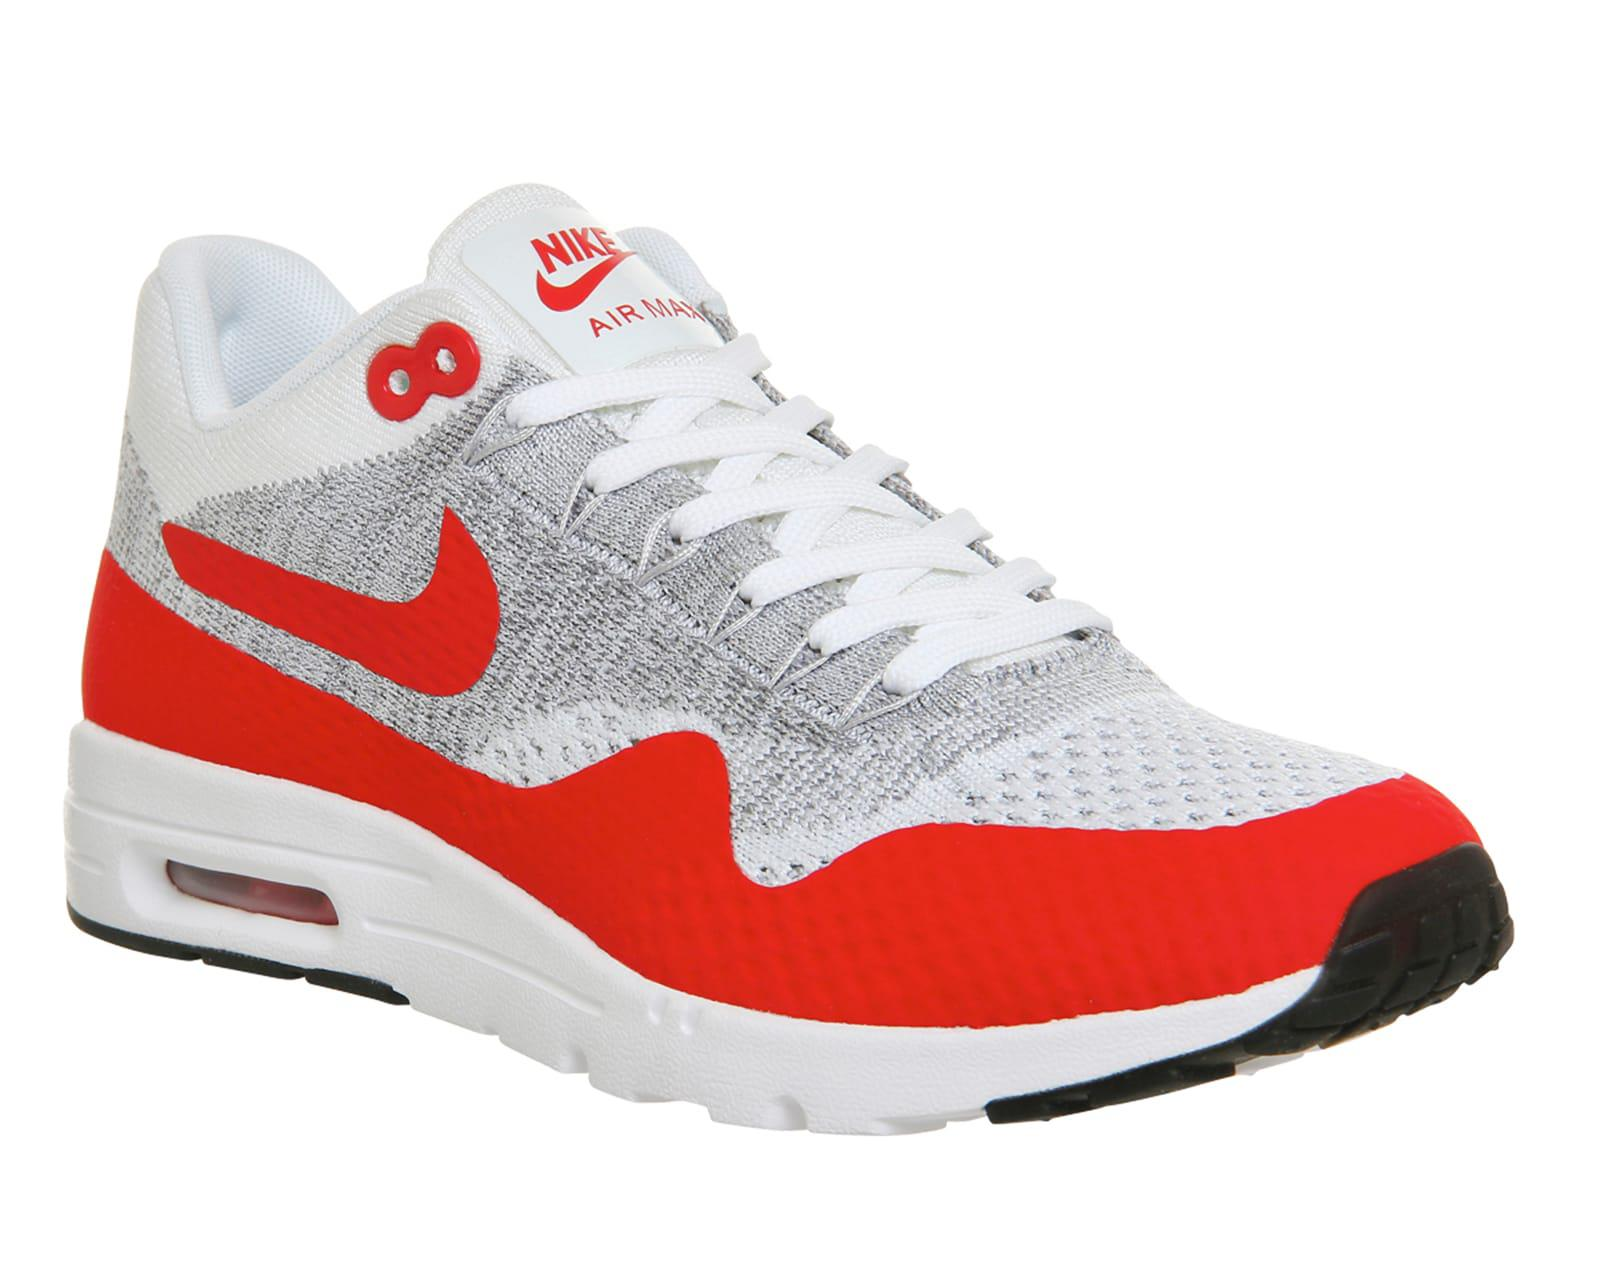 lyst nike air max 1 ultra flyknit in red for men. Black Bedroom Furniture Sets. Home Design Ideas